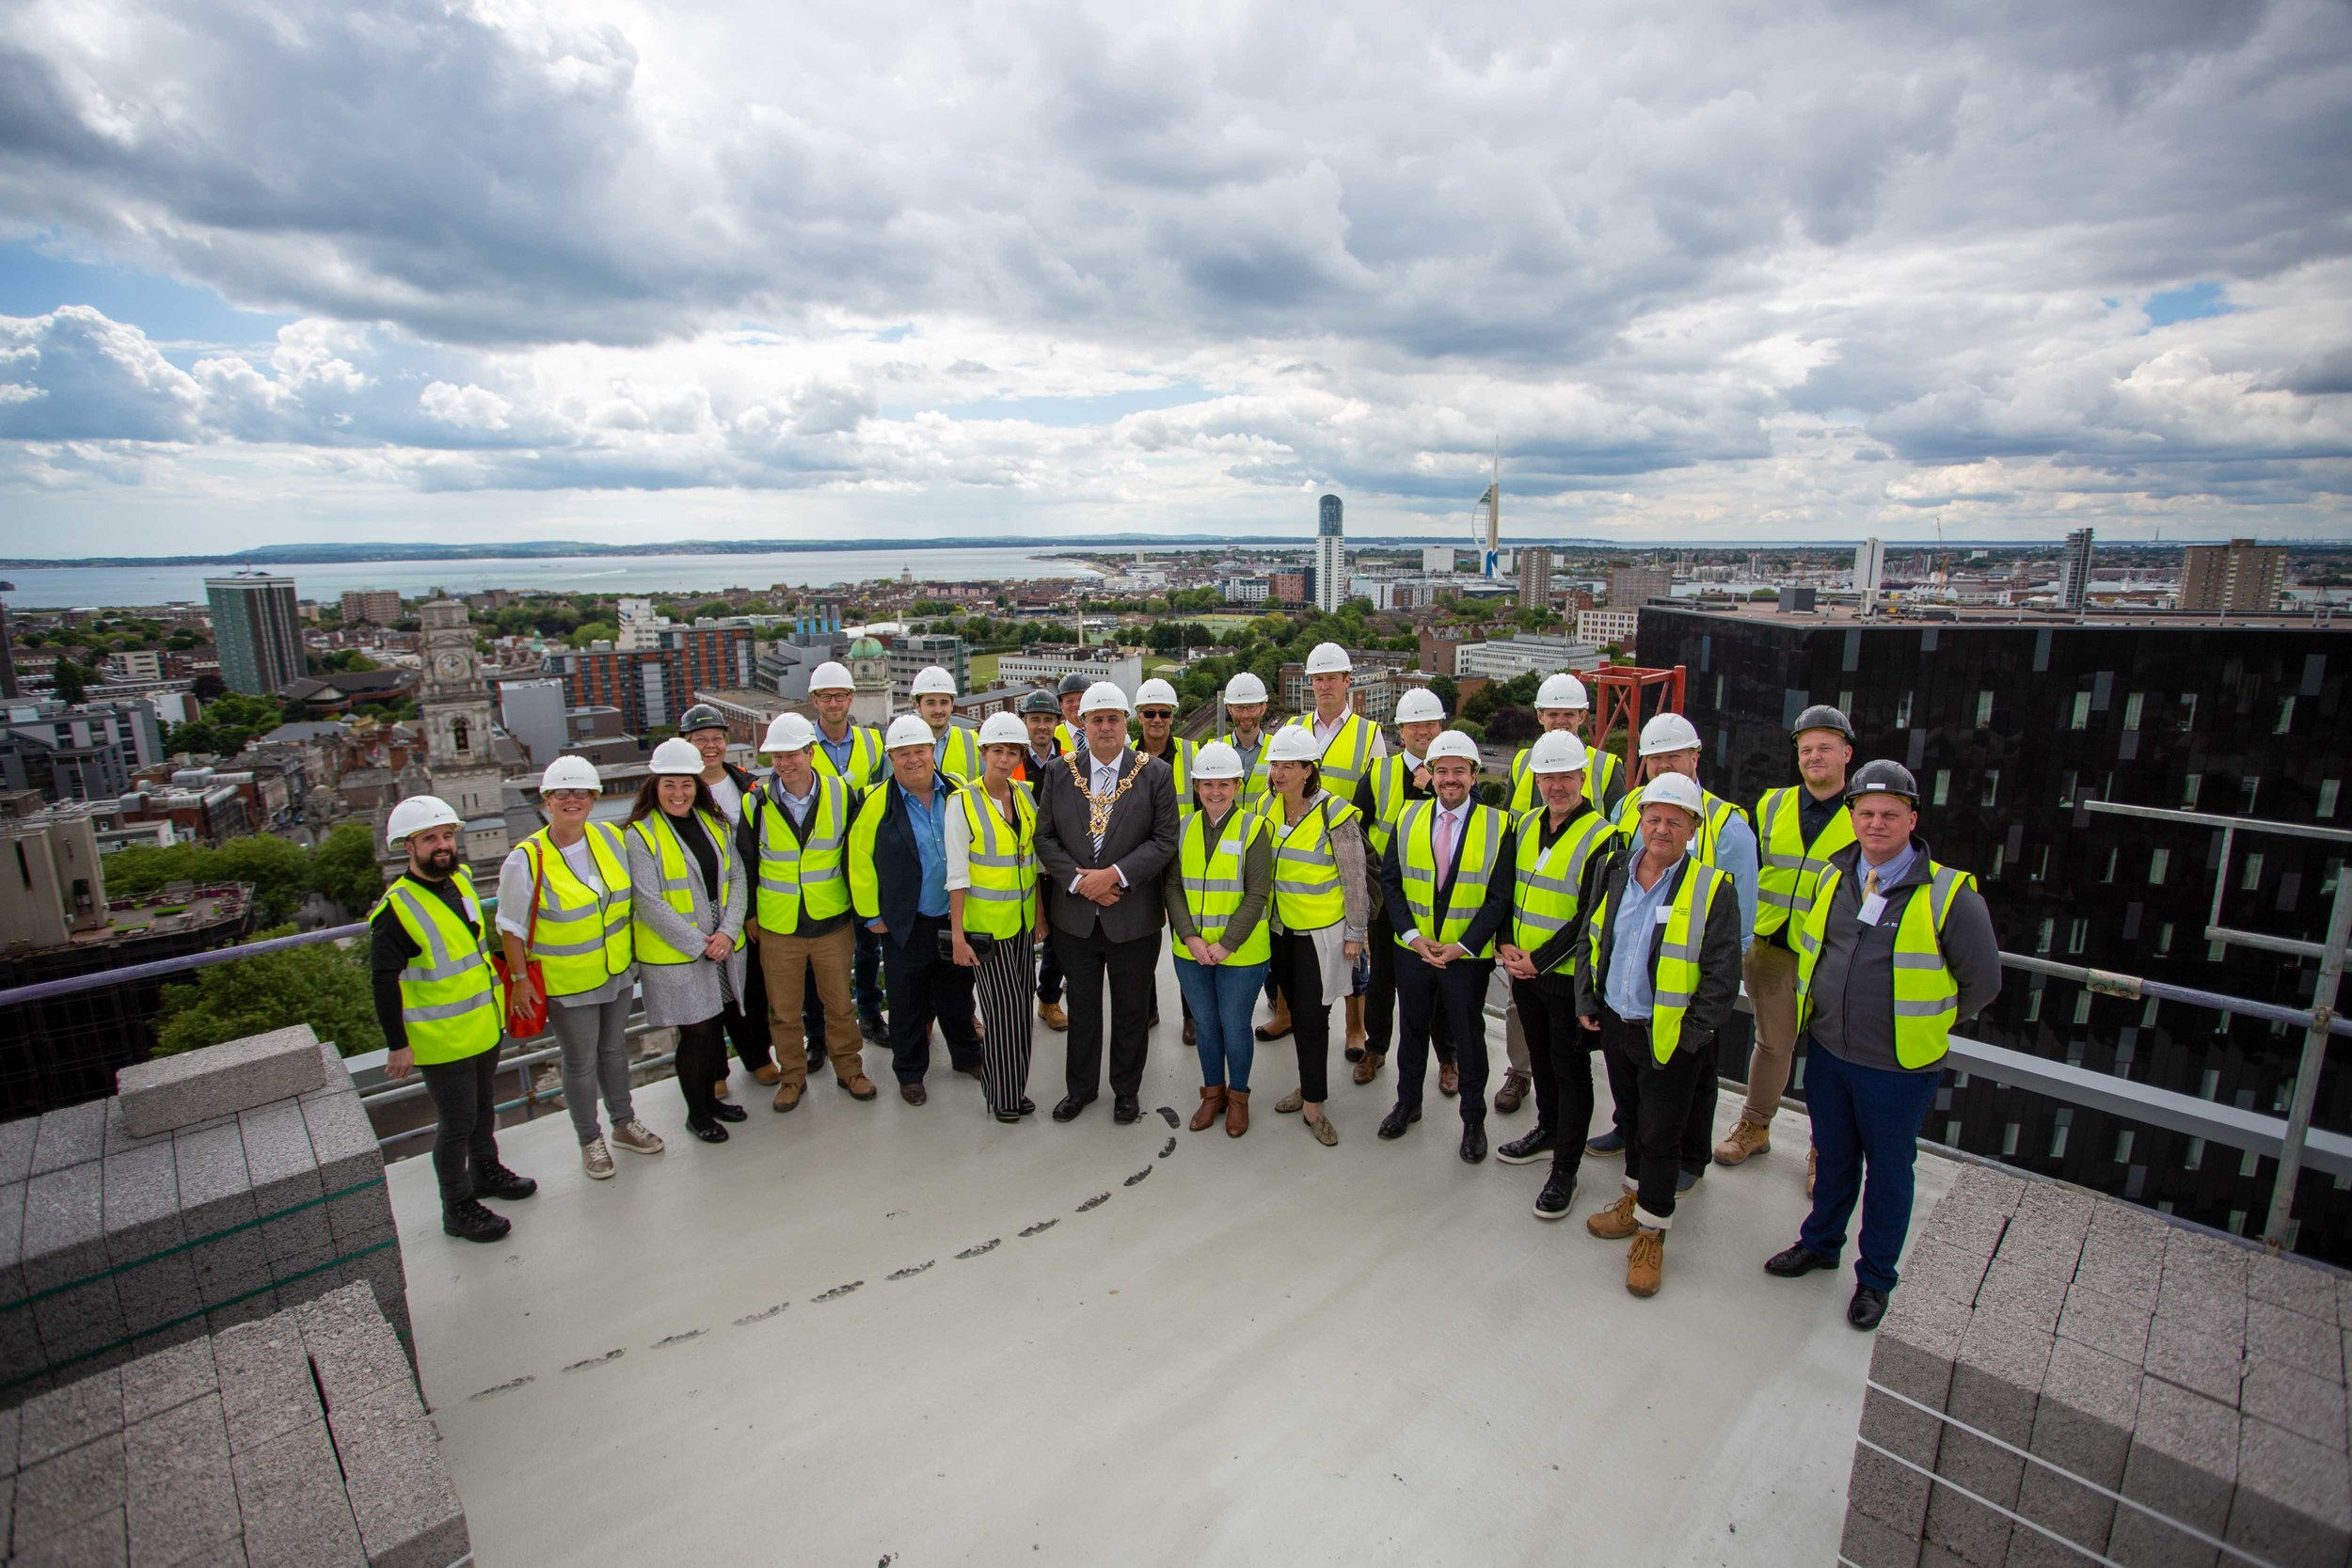 Stanhope House Topping Out 28.05.19 - Solent Sky Services--98.JPG